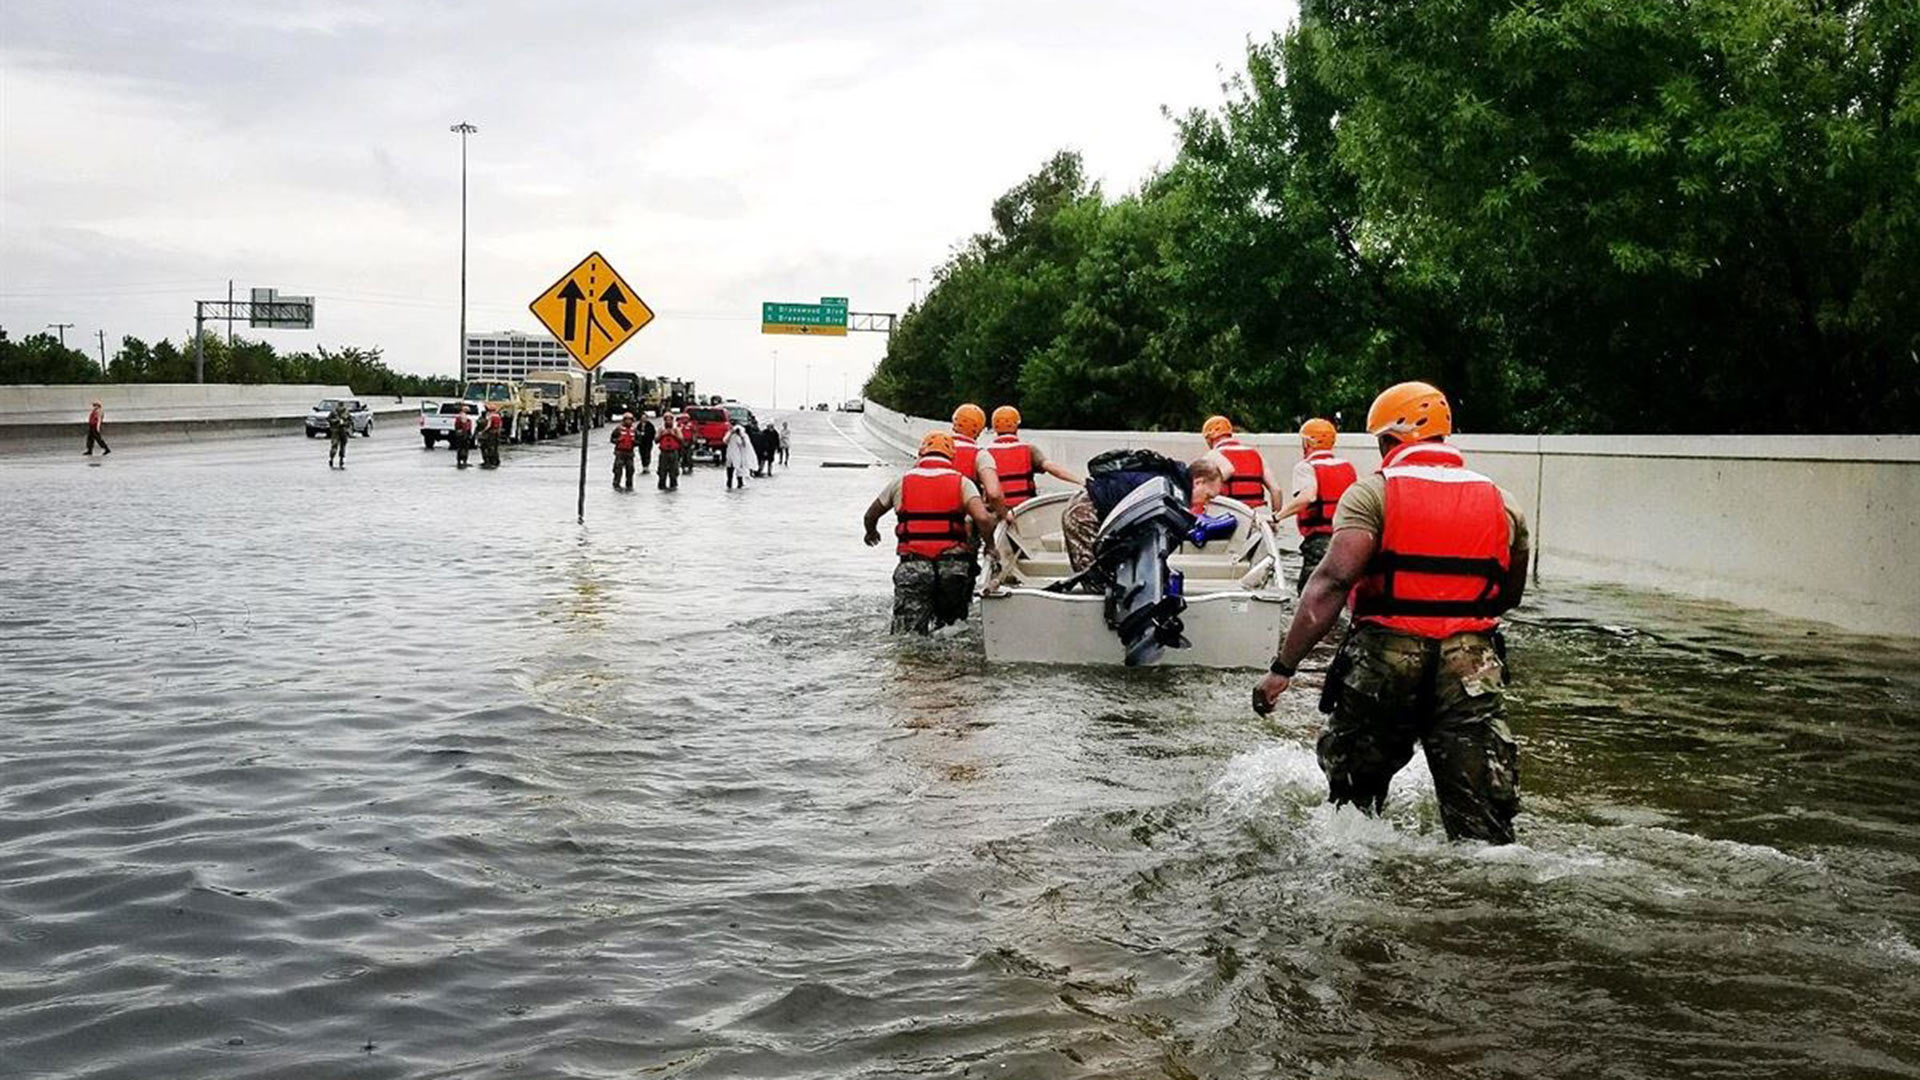 Rescue crews during 2017 flooding from Hurricane Harvey in Texas